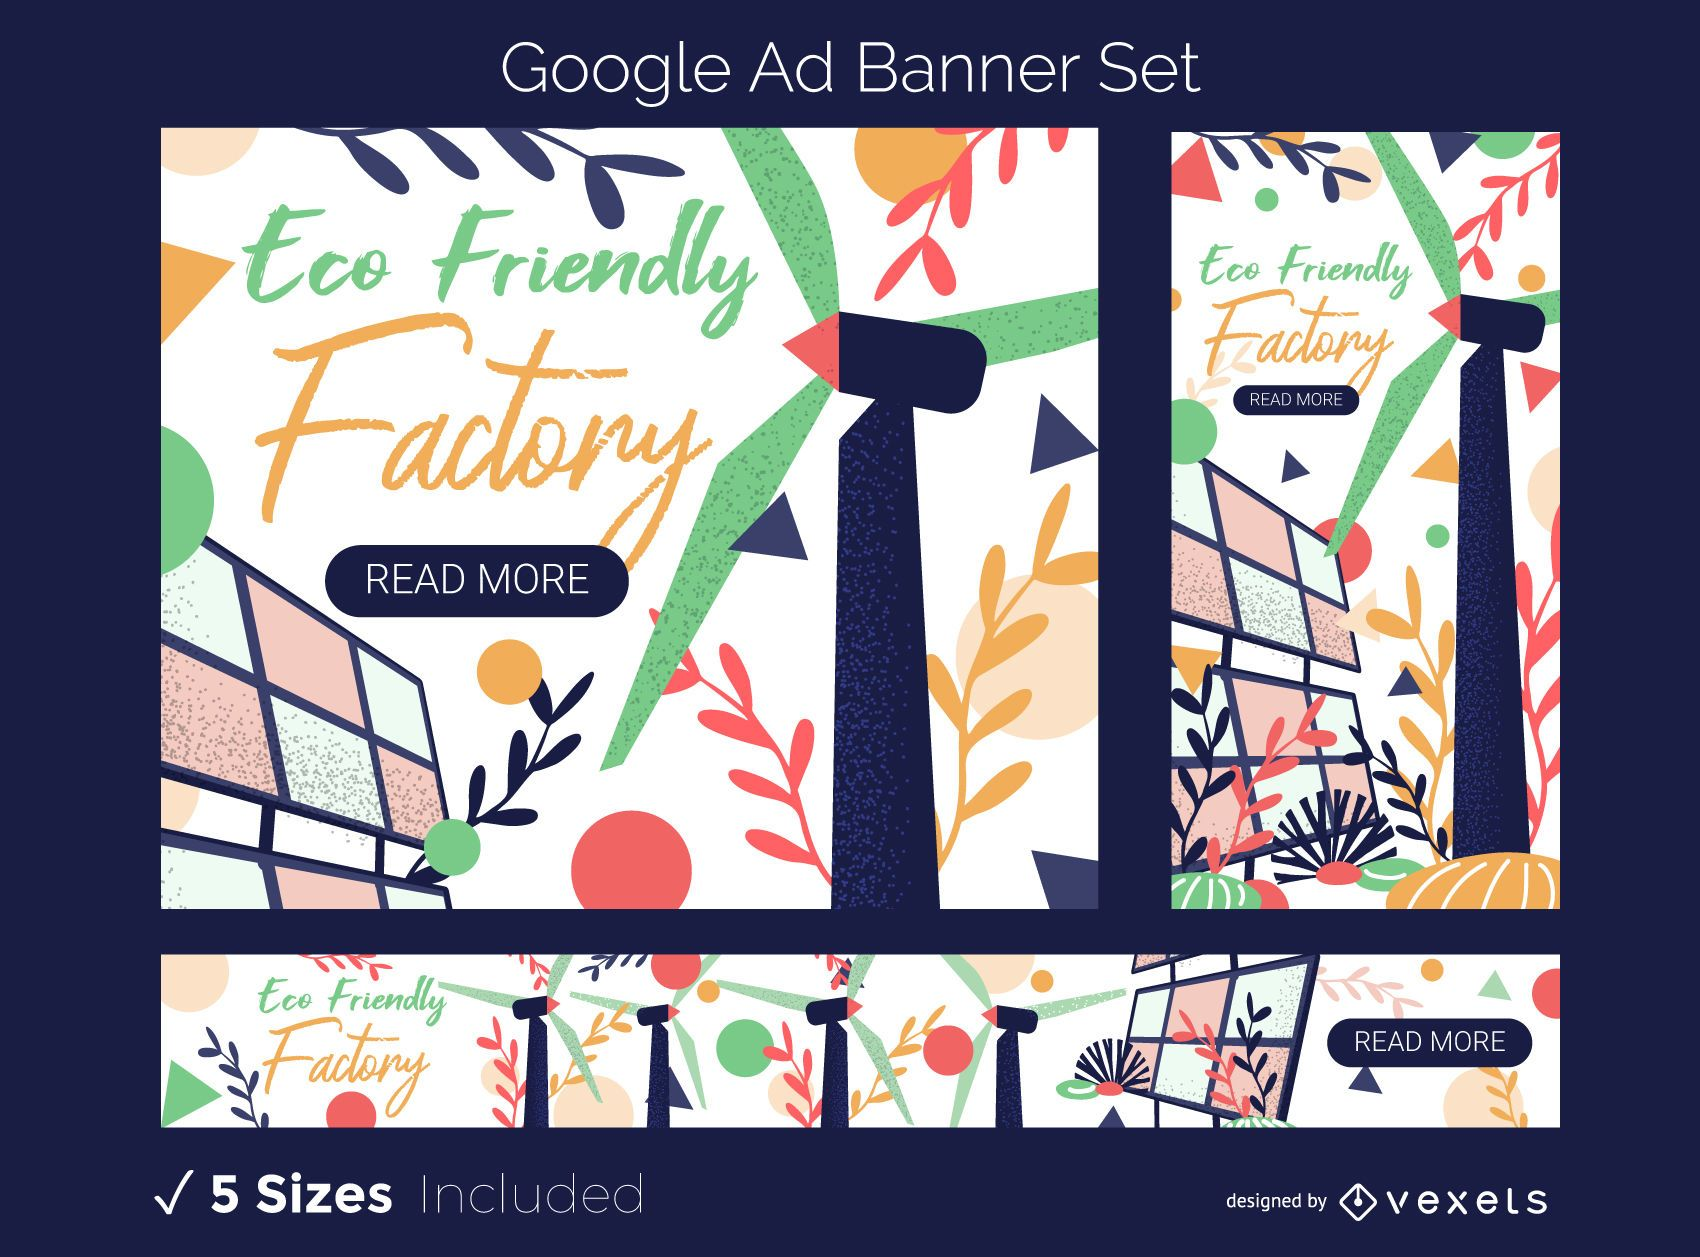 Eco Friendly Factory Ad Banner Set